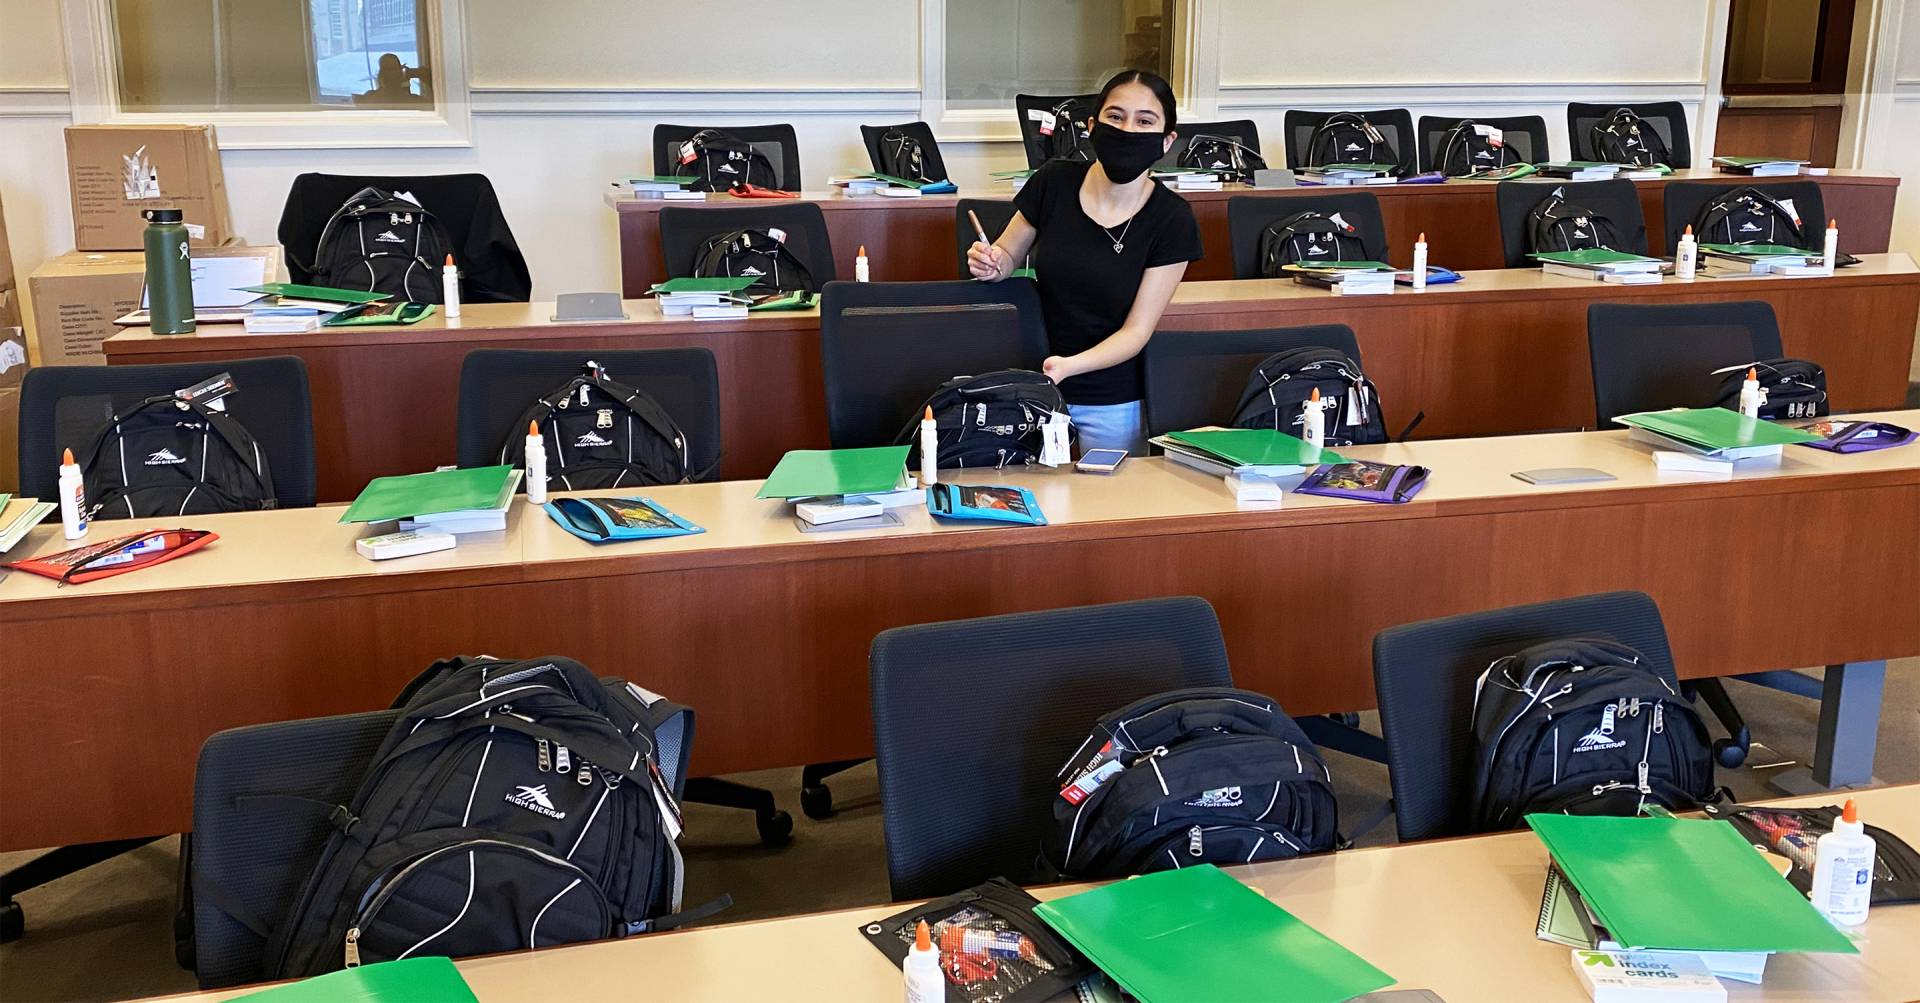 Summer teaching assistant for the Princeton University Preparatory Program, prepares backpacks filled with essential supplies for this year's cohort of PUPP scholars